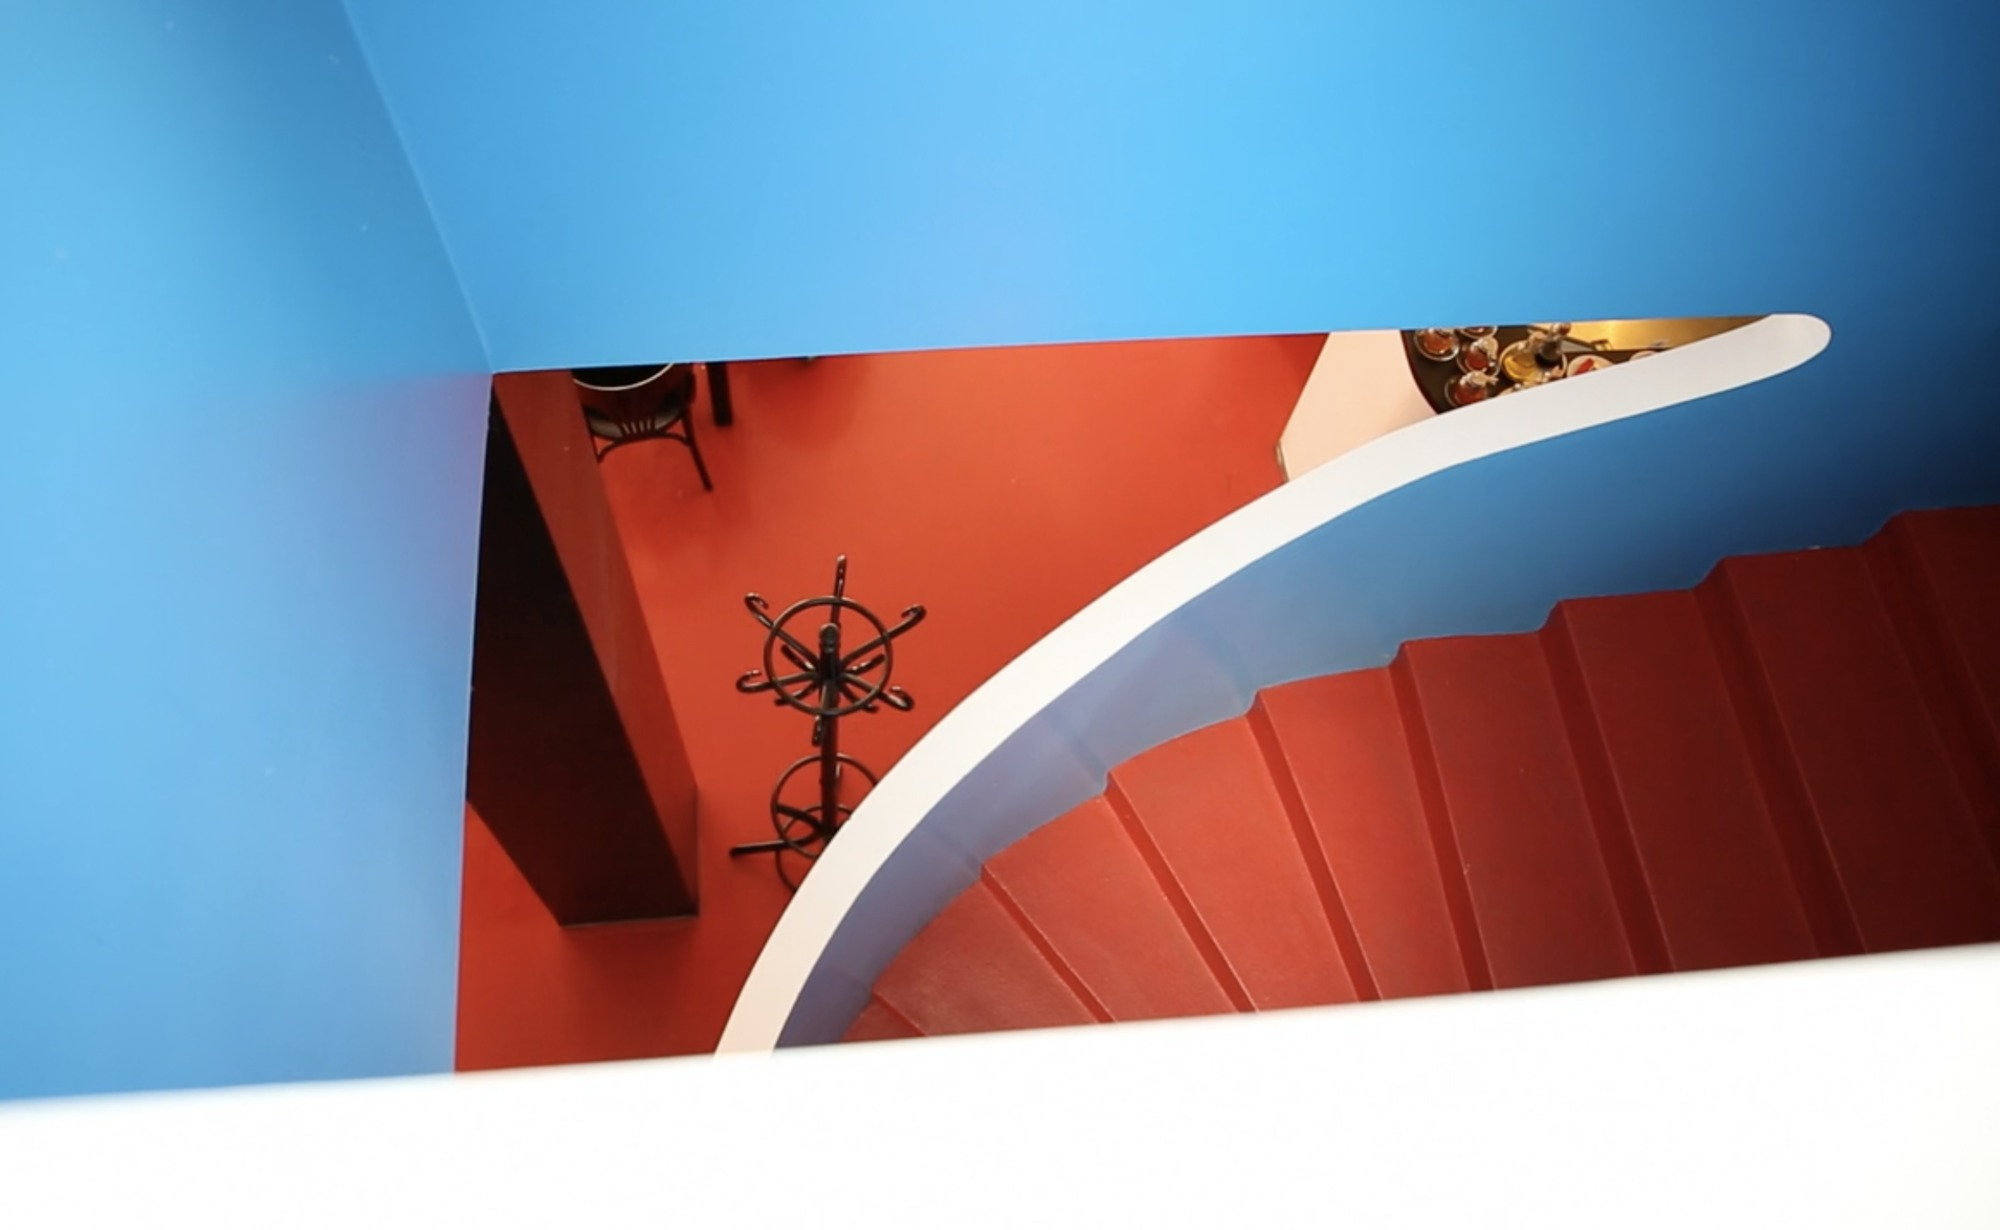 If Staircases Are Such A Crucial Architectural Element, Why Are They So Often Neglected?